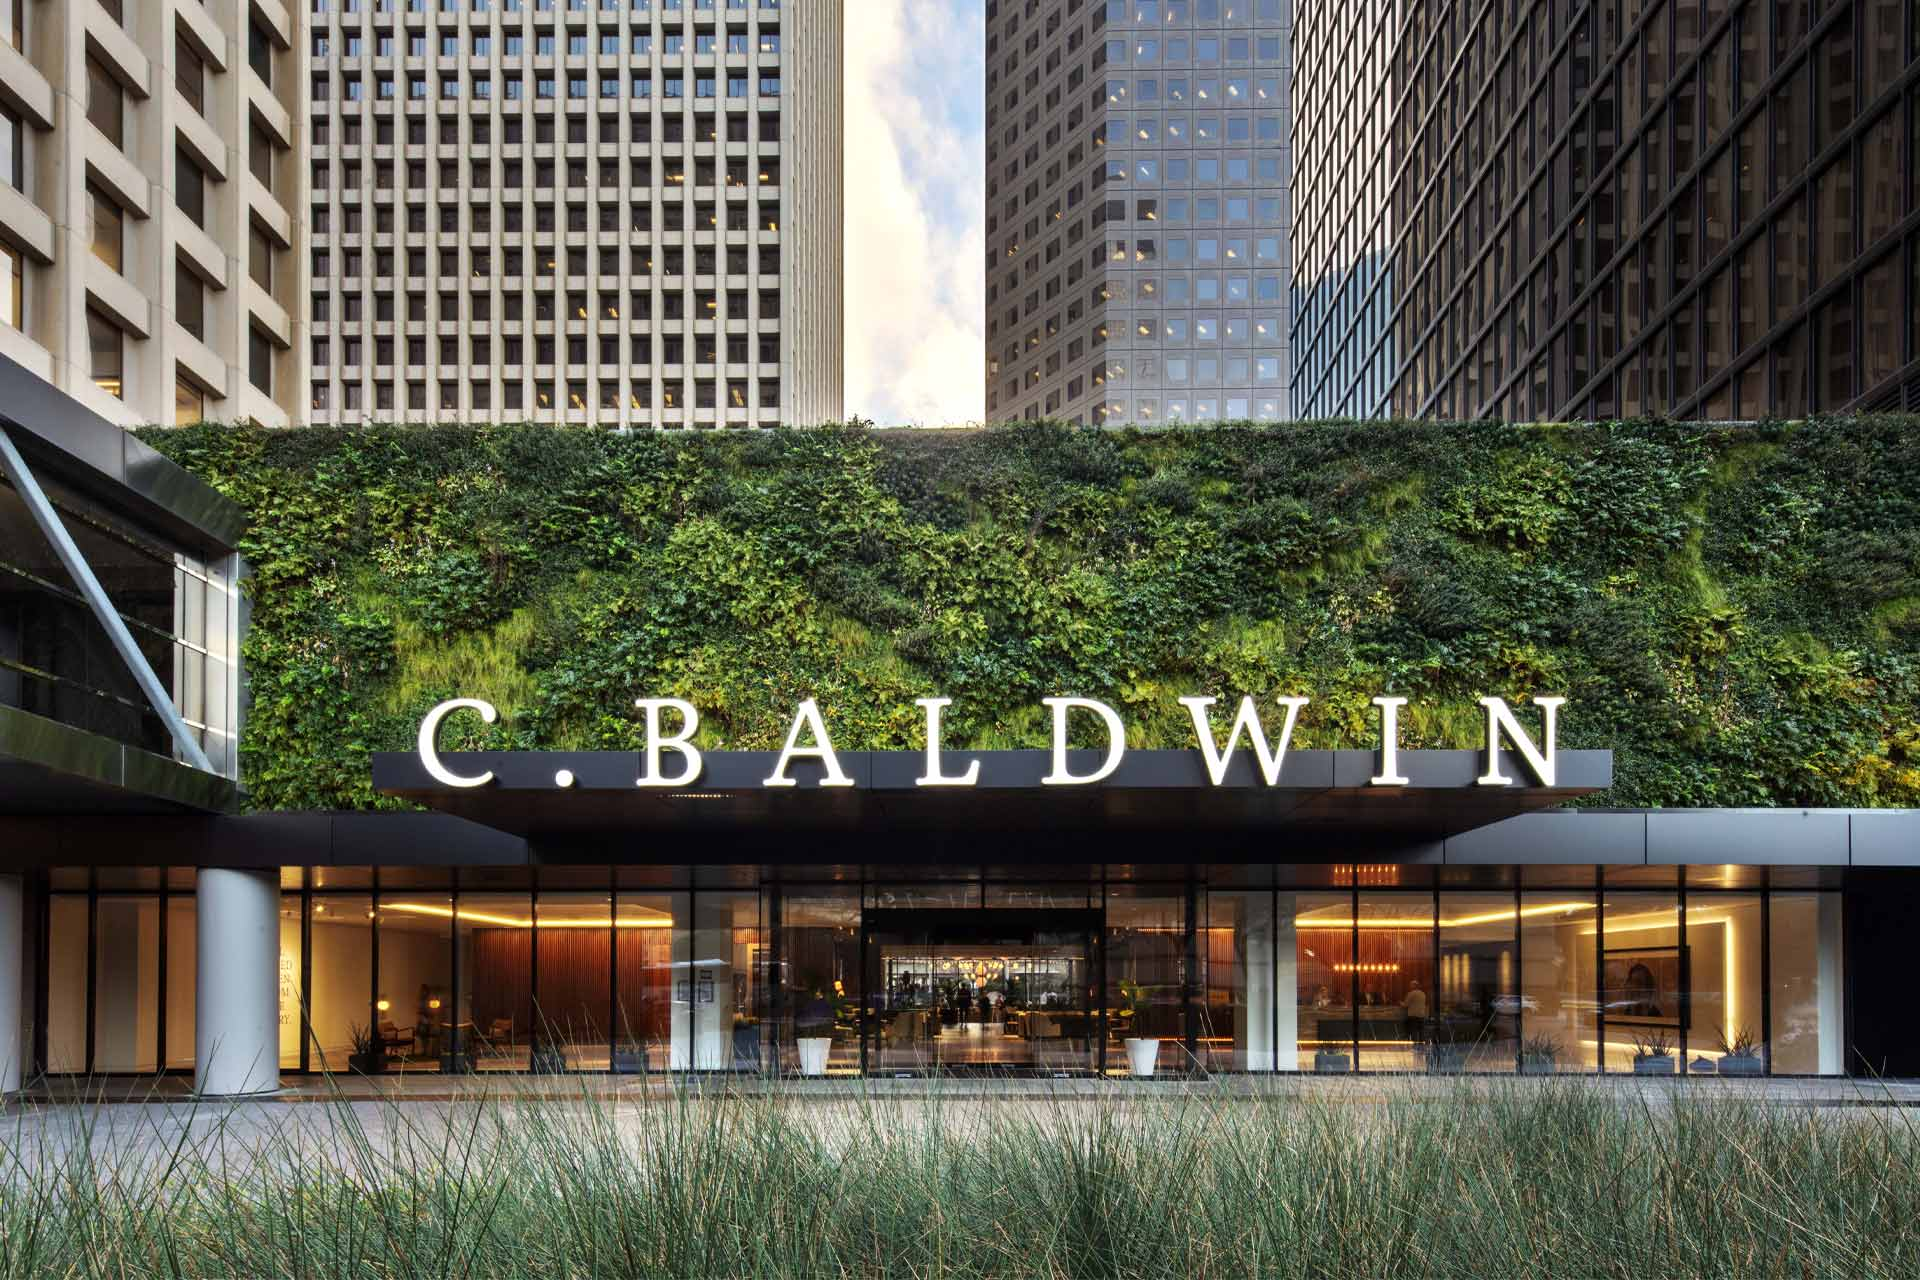 The exterior facade at C. Baldwin Hotel in Houston, Texas